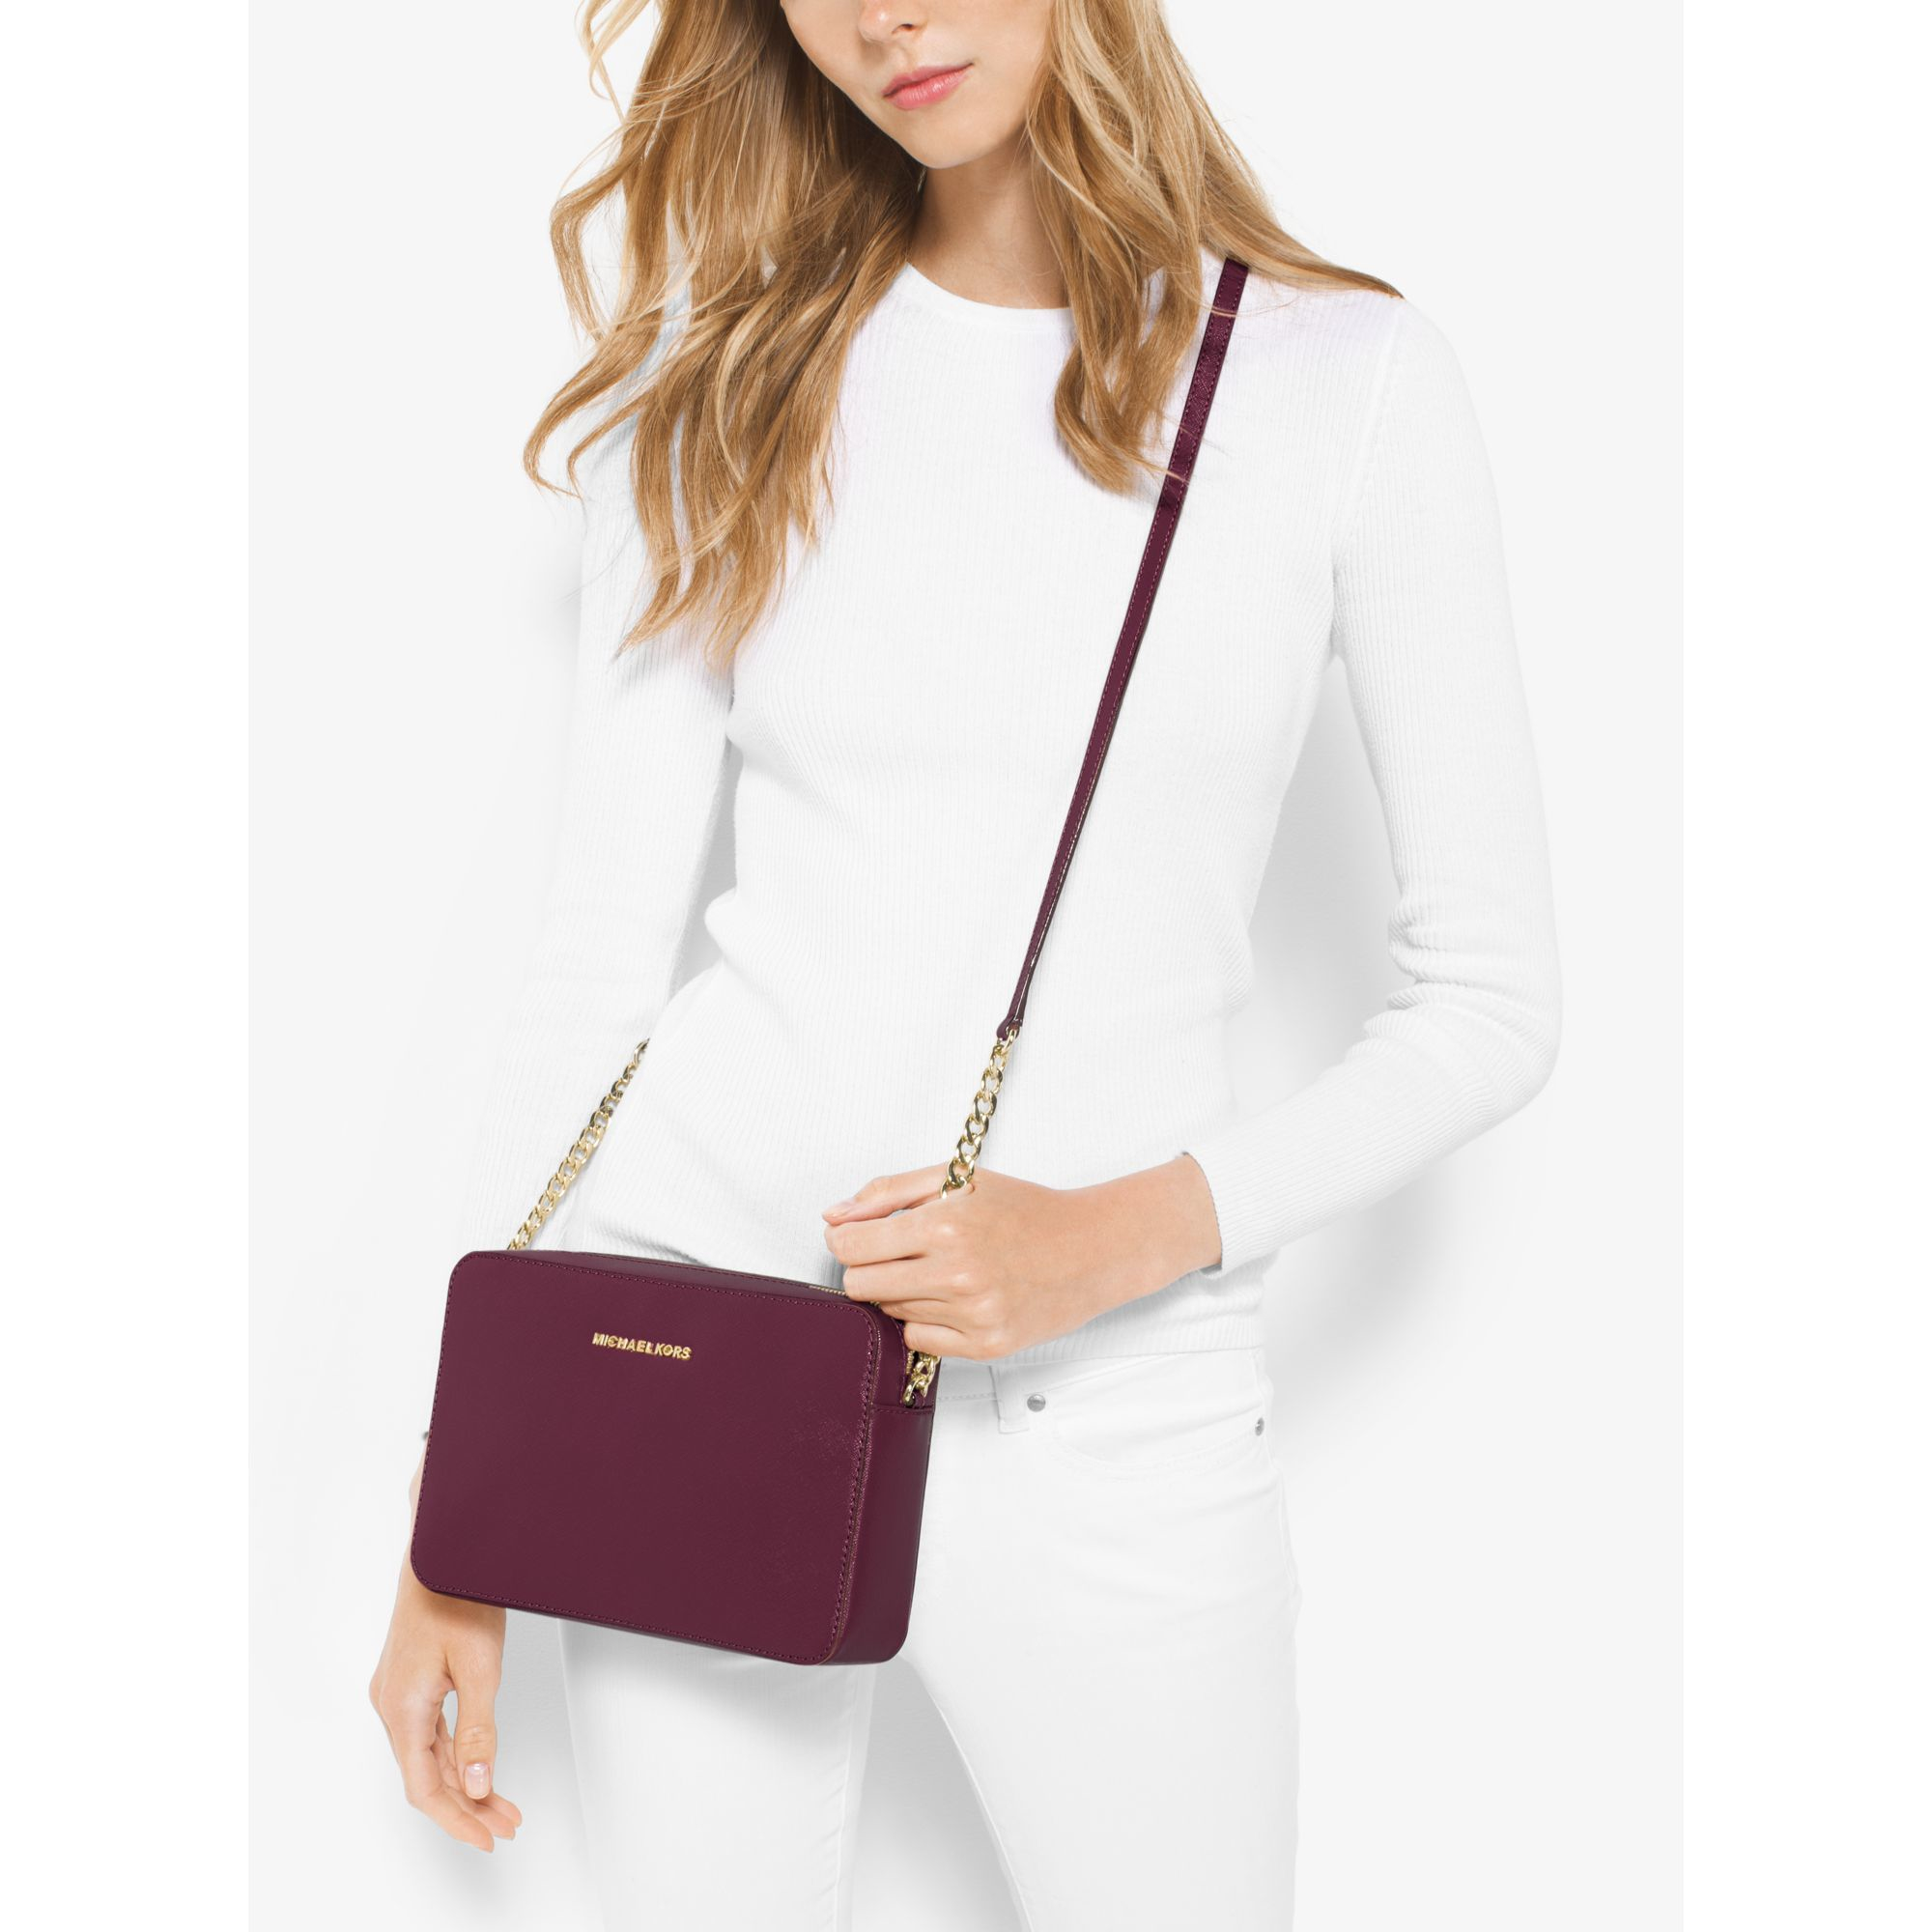 6478804537f00c Michael Kors Jet Set Large Patent Leather Crossbody Bag in Purple - Lyst